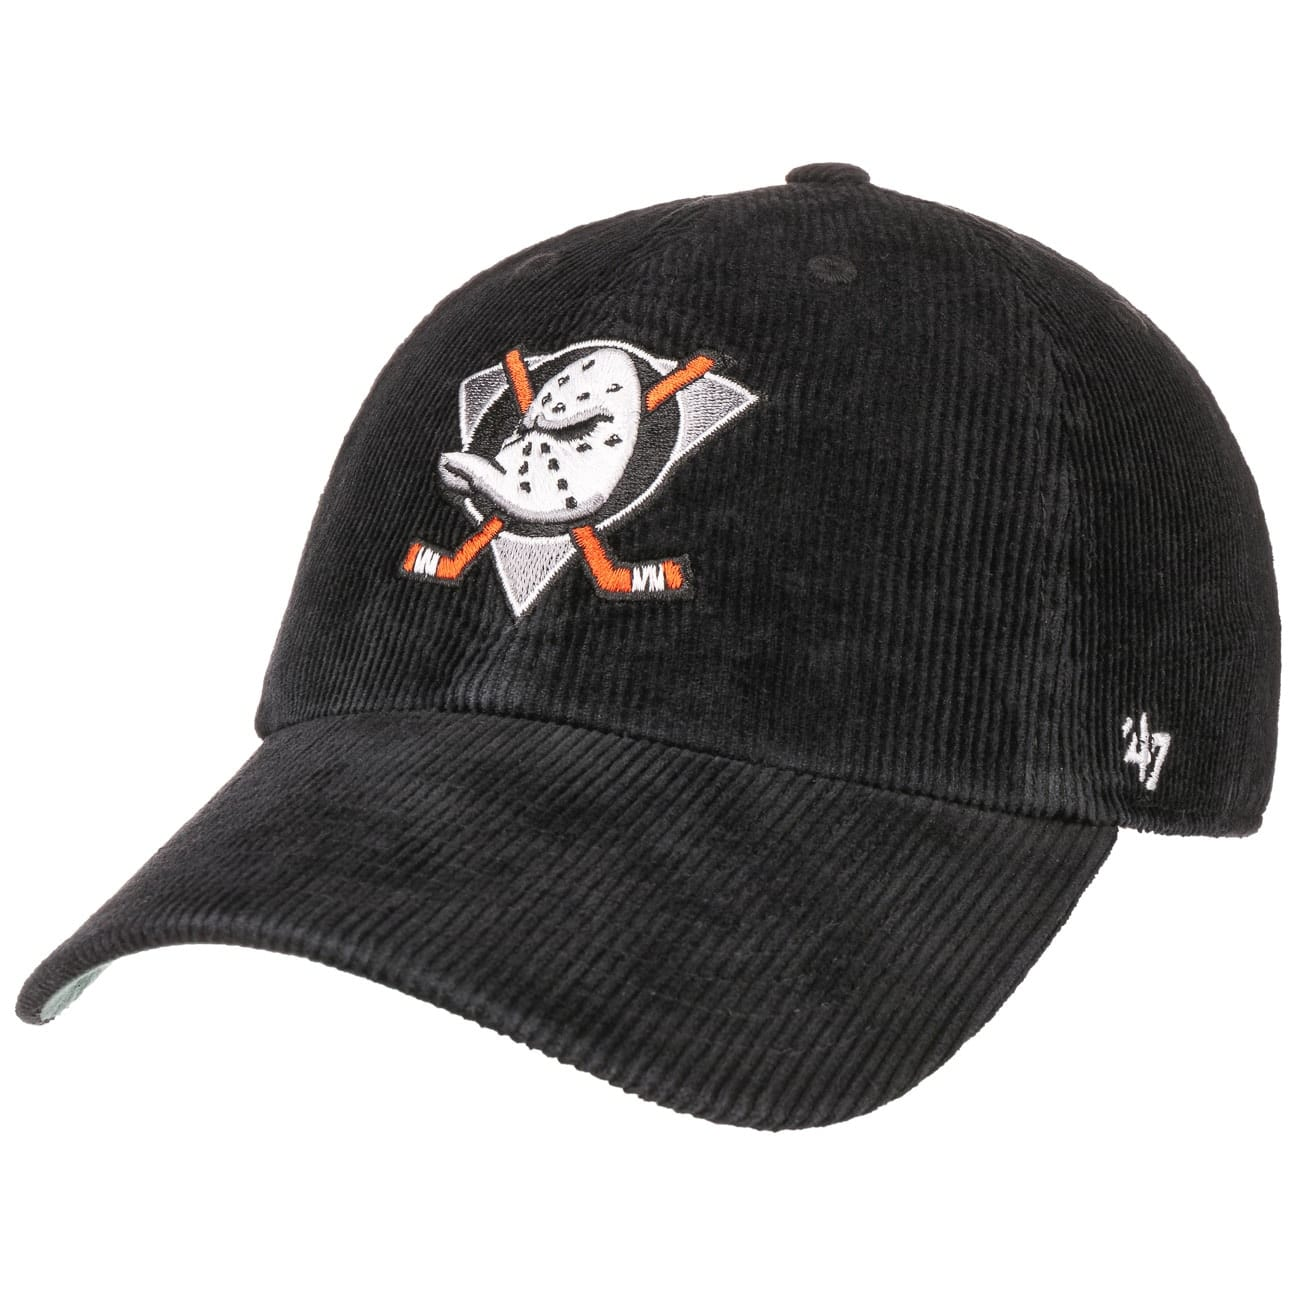 Gorra Clean Up Cord Ducks by 47 Brand